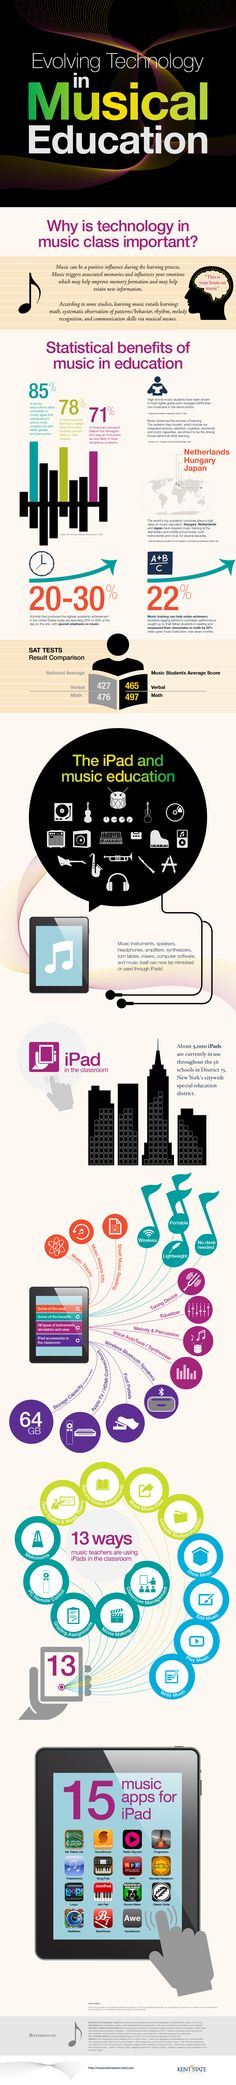 Evolving Technology In Musical Education. hopw now everything is technology even music comes with technology.